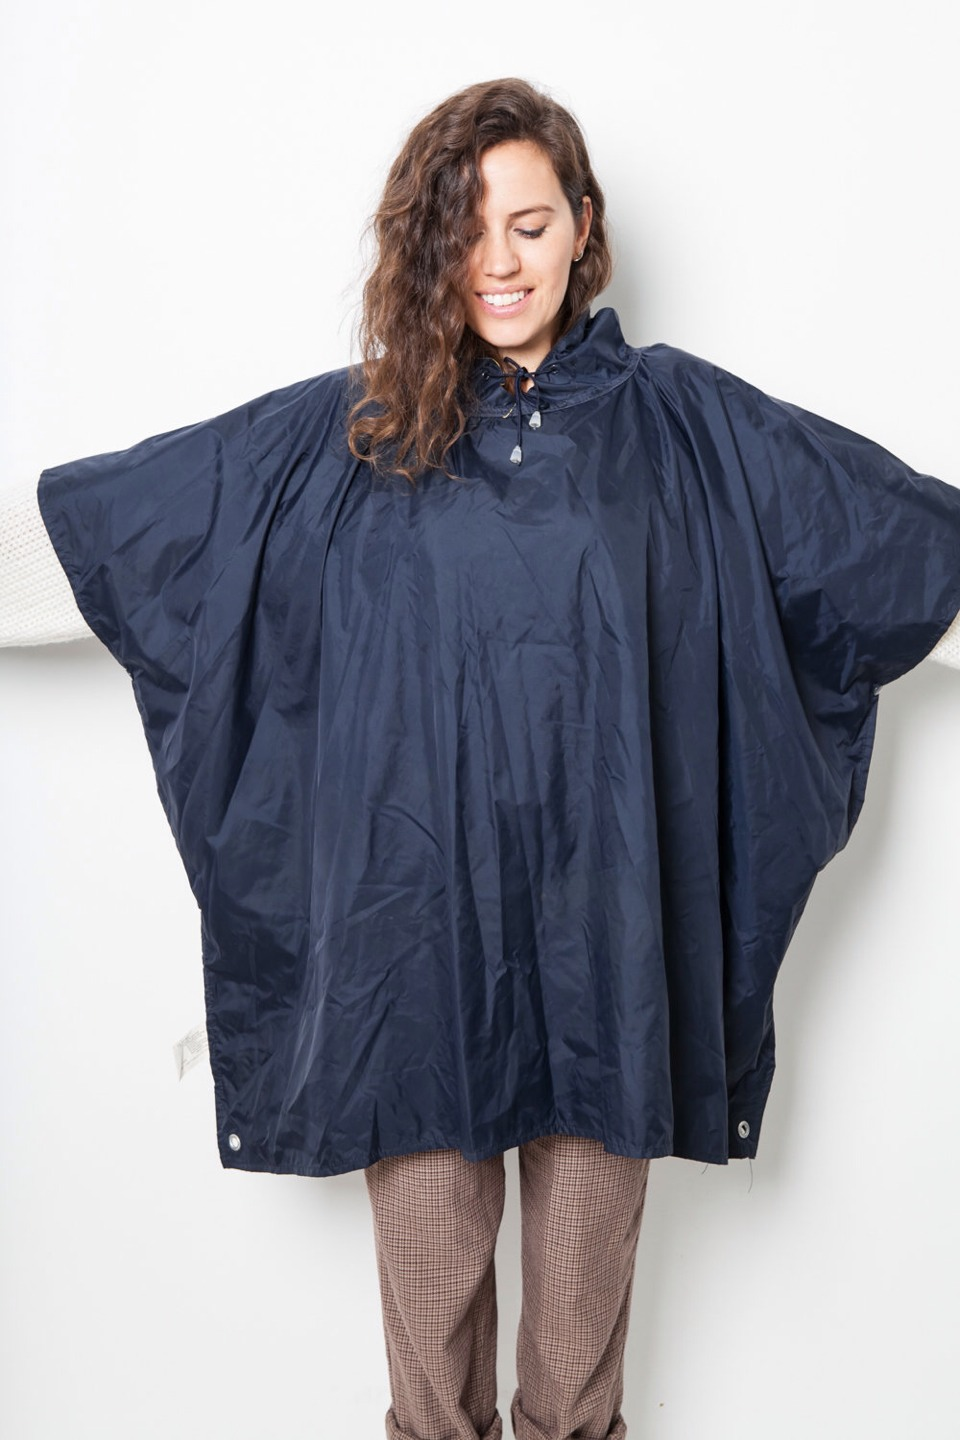 9) RAIN PONCHO! Just in case you get some rain.